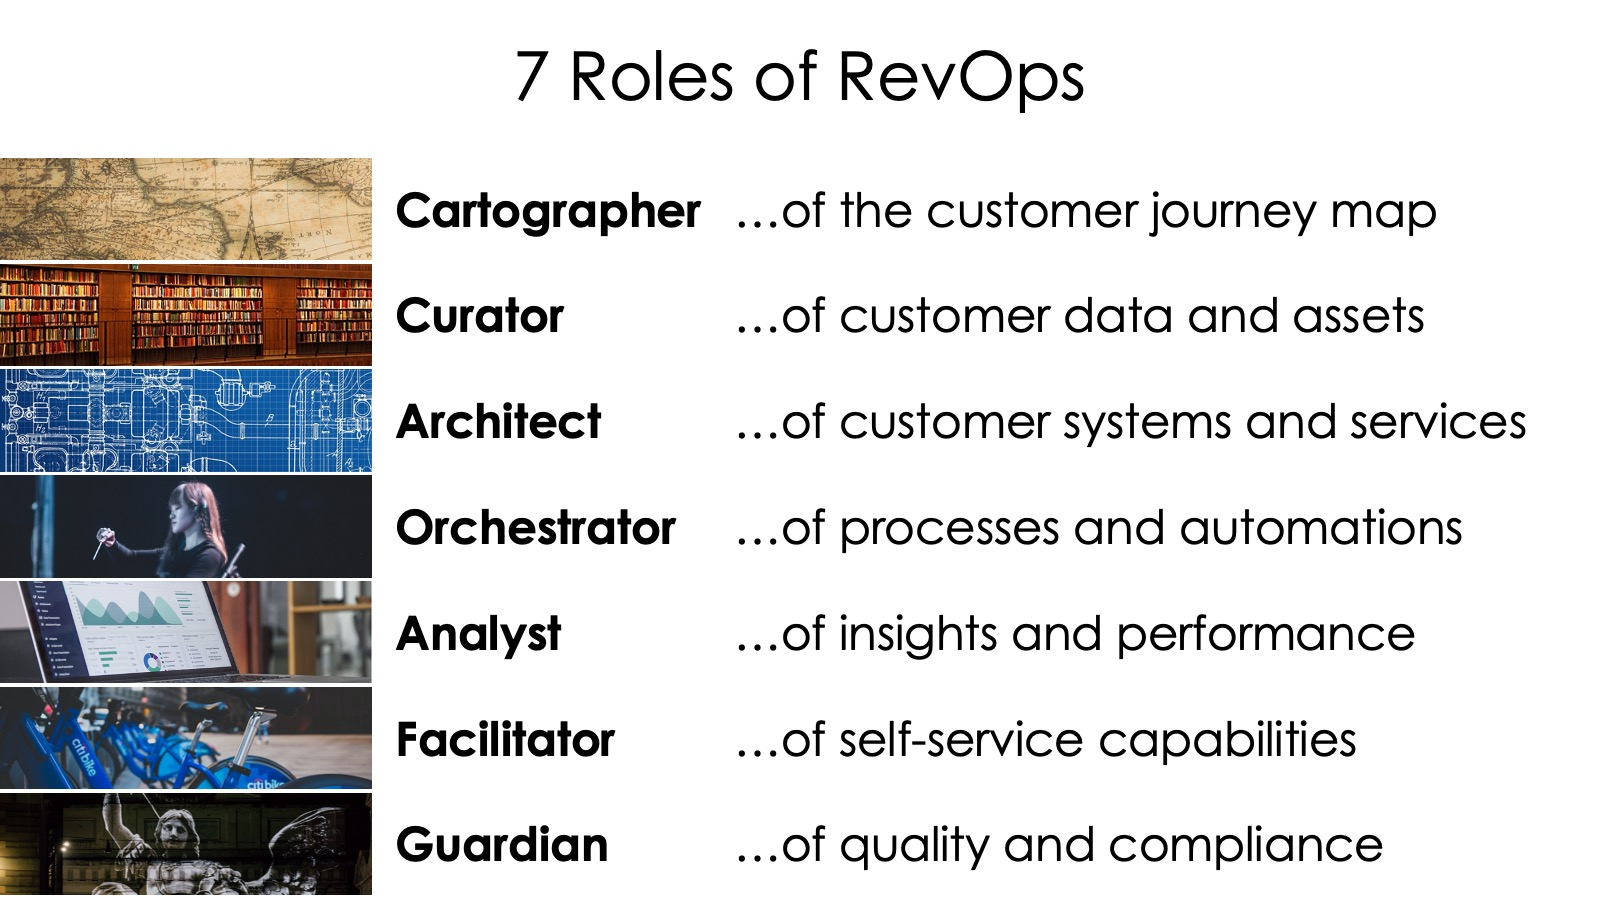 """Still iterating on """"7 Roles of RevOps"""".  I keep searching for a better word than """"Facilitator"""" for the role of enabling self-service capabilities for the broader revenue org, e.g., self-service analytics, self-service workflow automation, etc.  Any suggestions?  #martech https://t.co/ihQrG5E0cZ"""